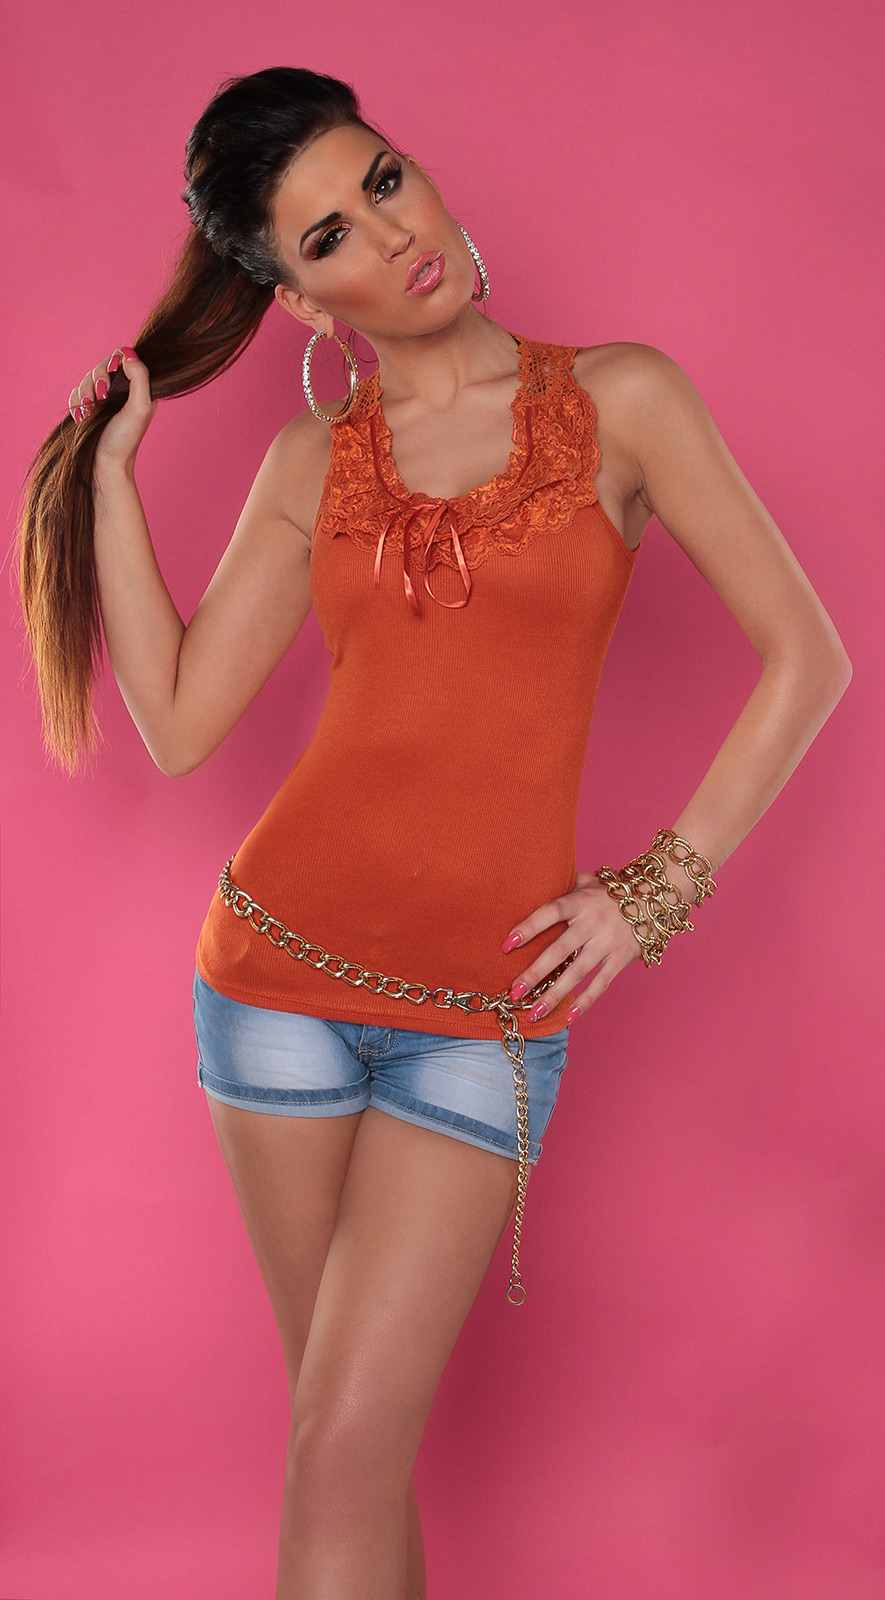 Ladies Ribbed Singlet Tank Top with Lace - Orange - Size L/XL - Click Image to Close